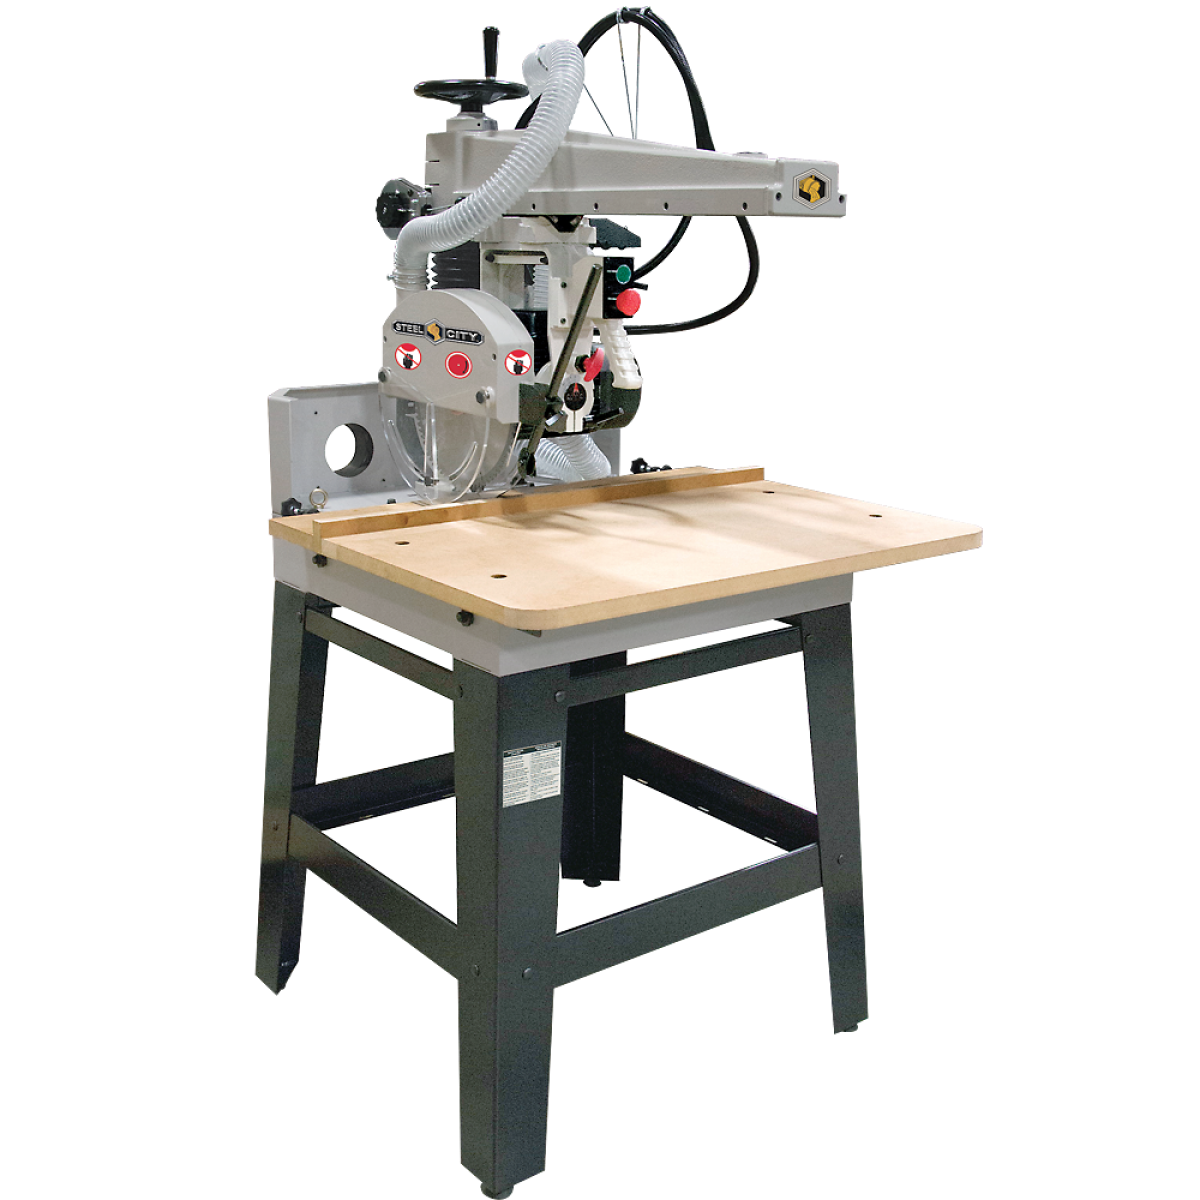 radial-arm-saw-png-1